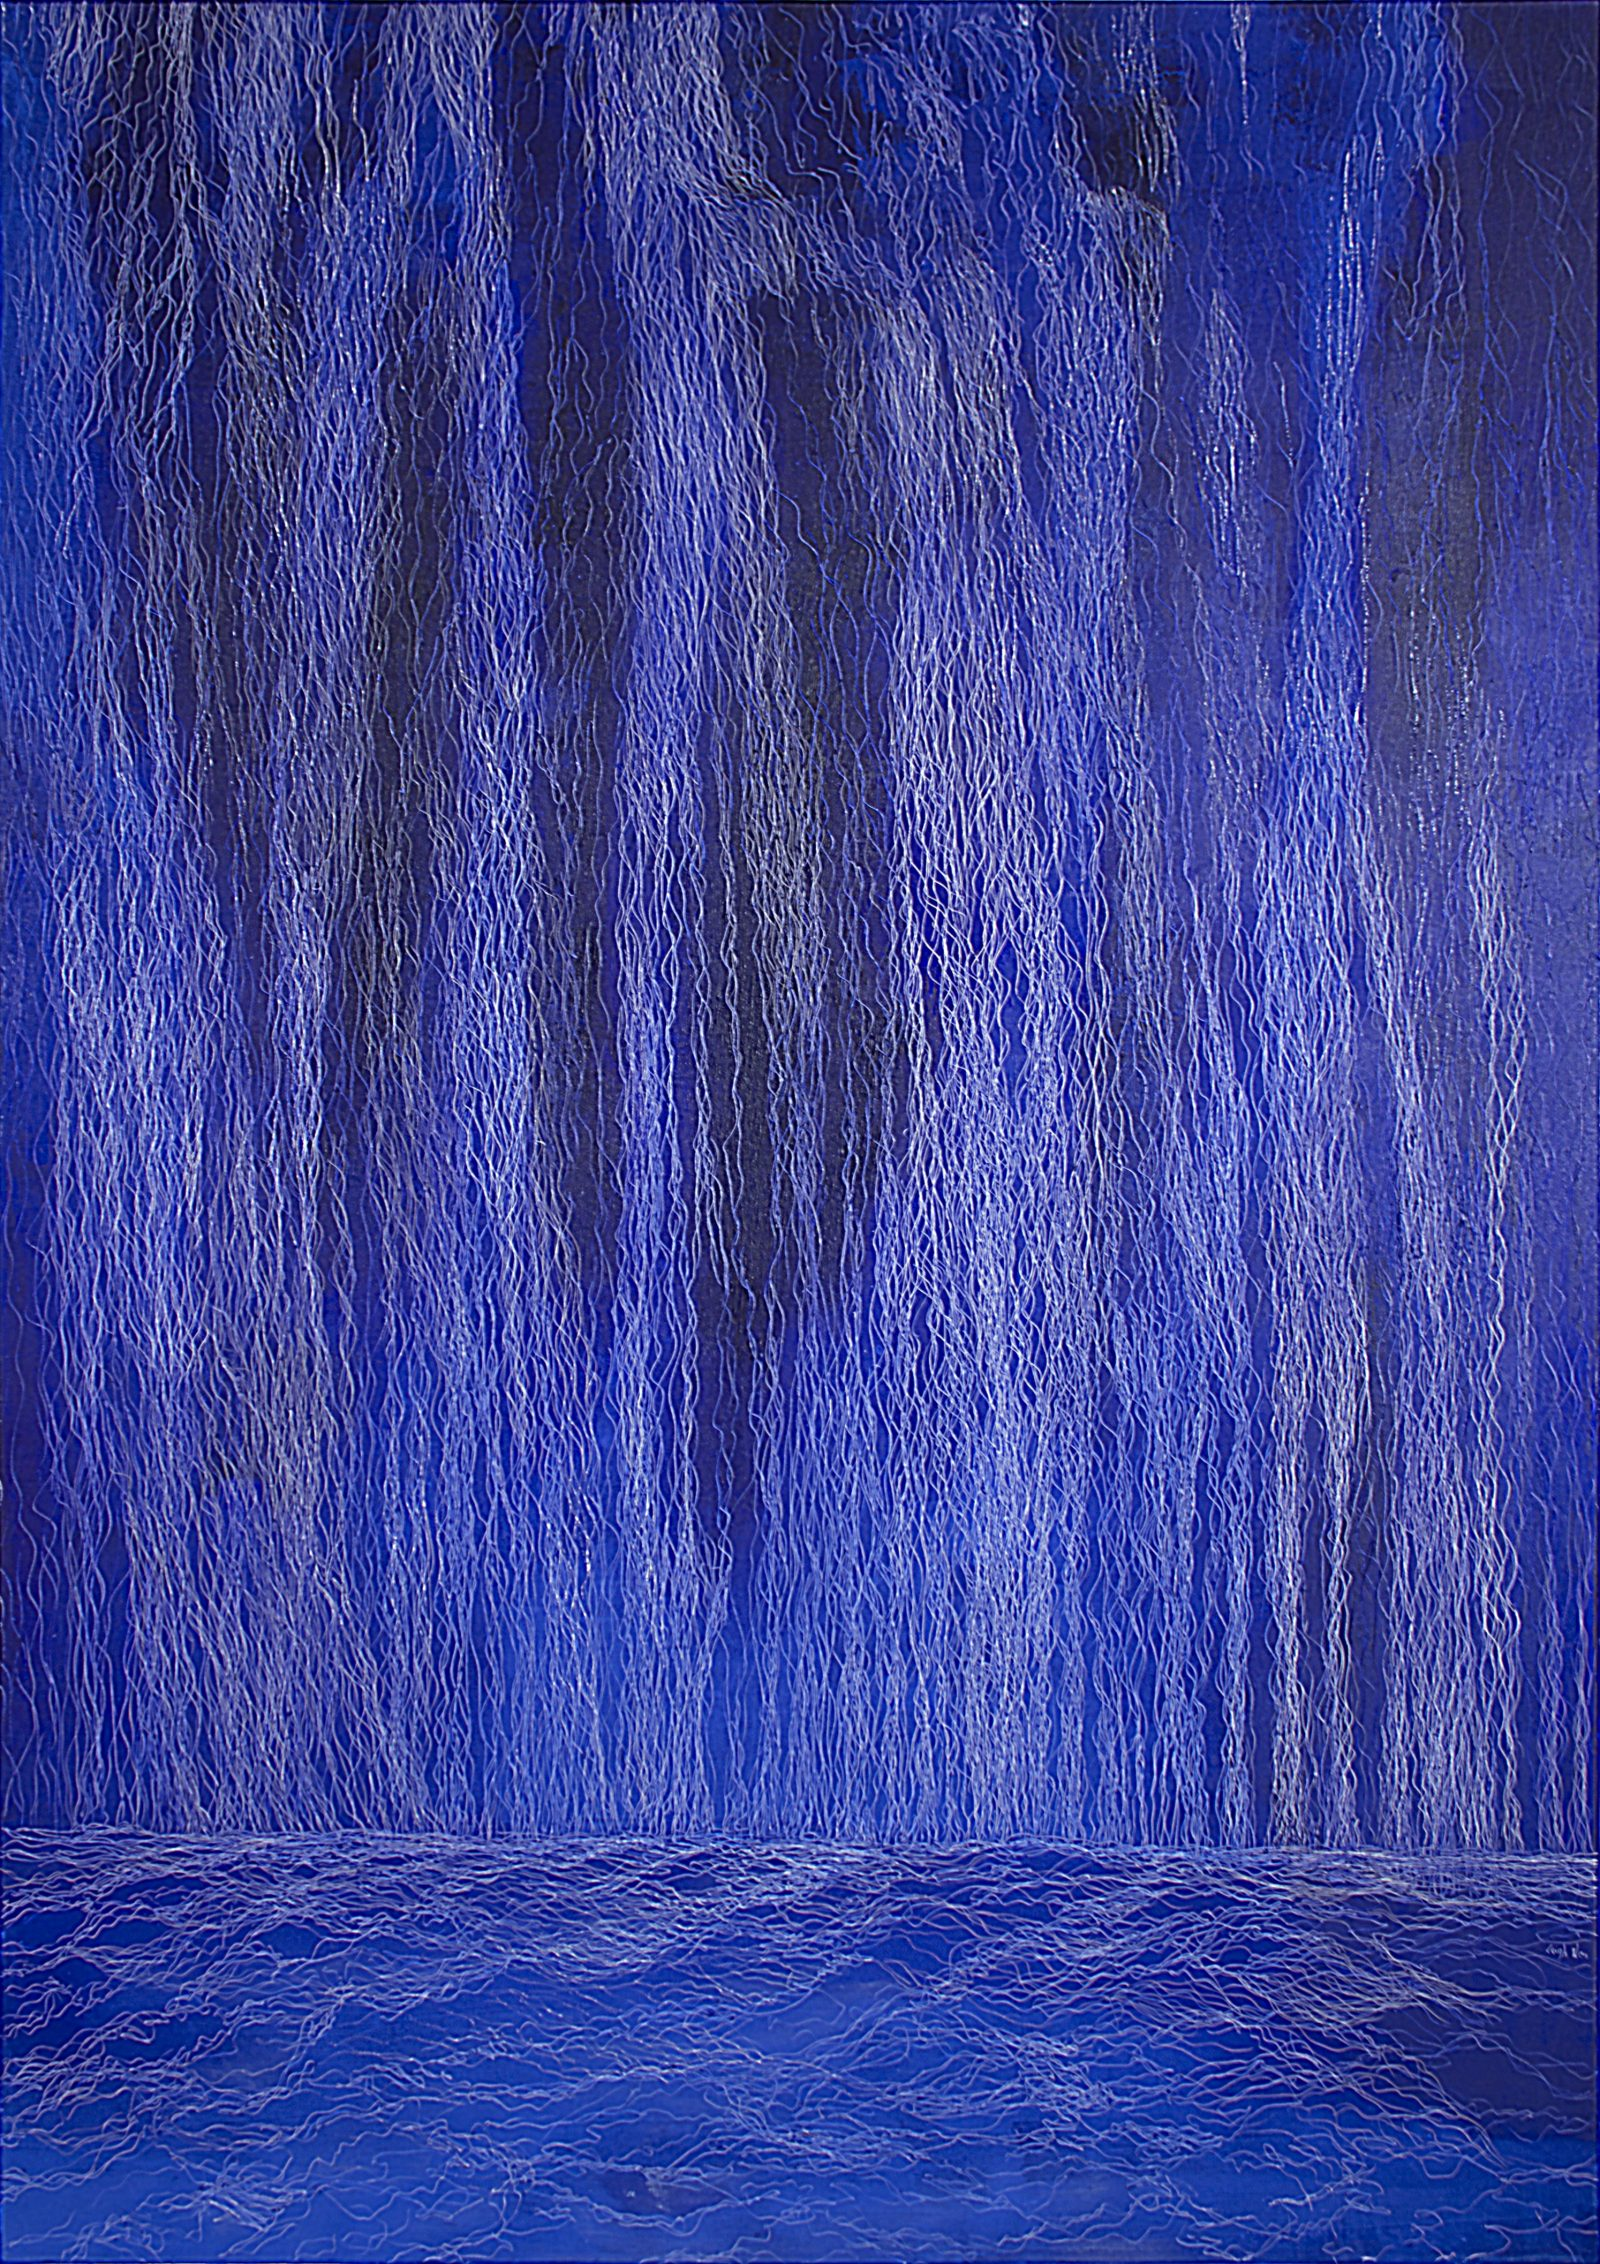 瀑布 II, waterfall II, 227 x 162 cm, oil on linen, 2017